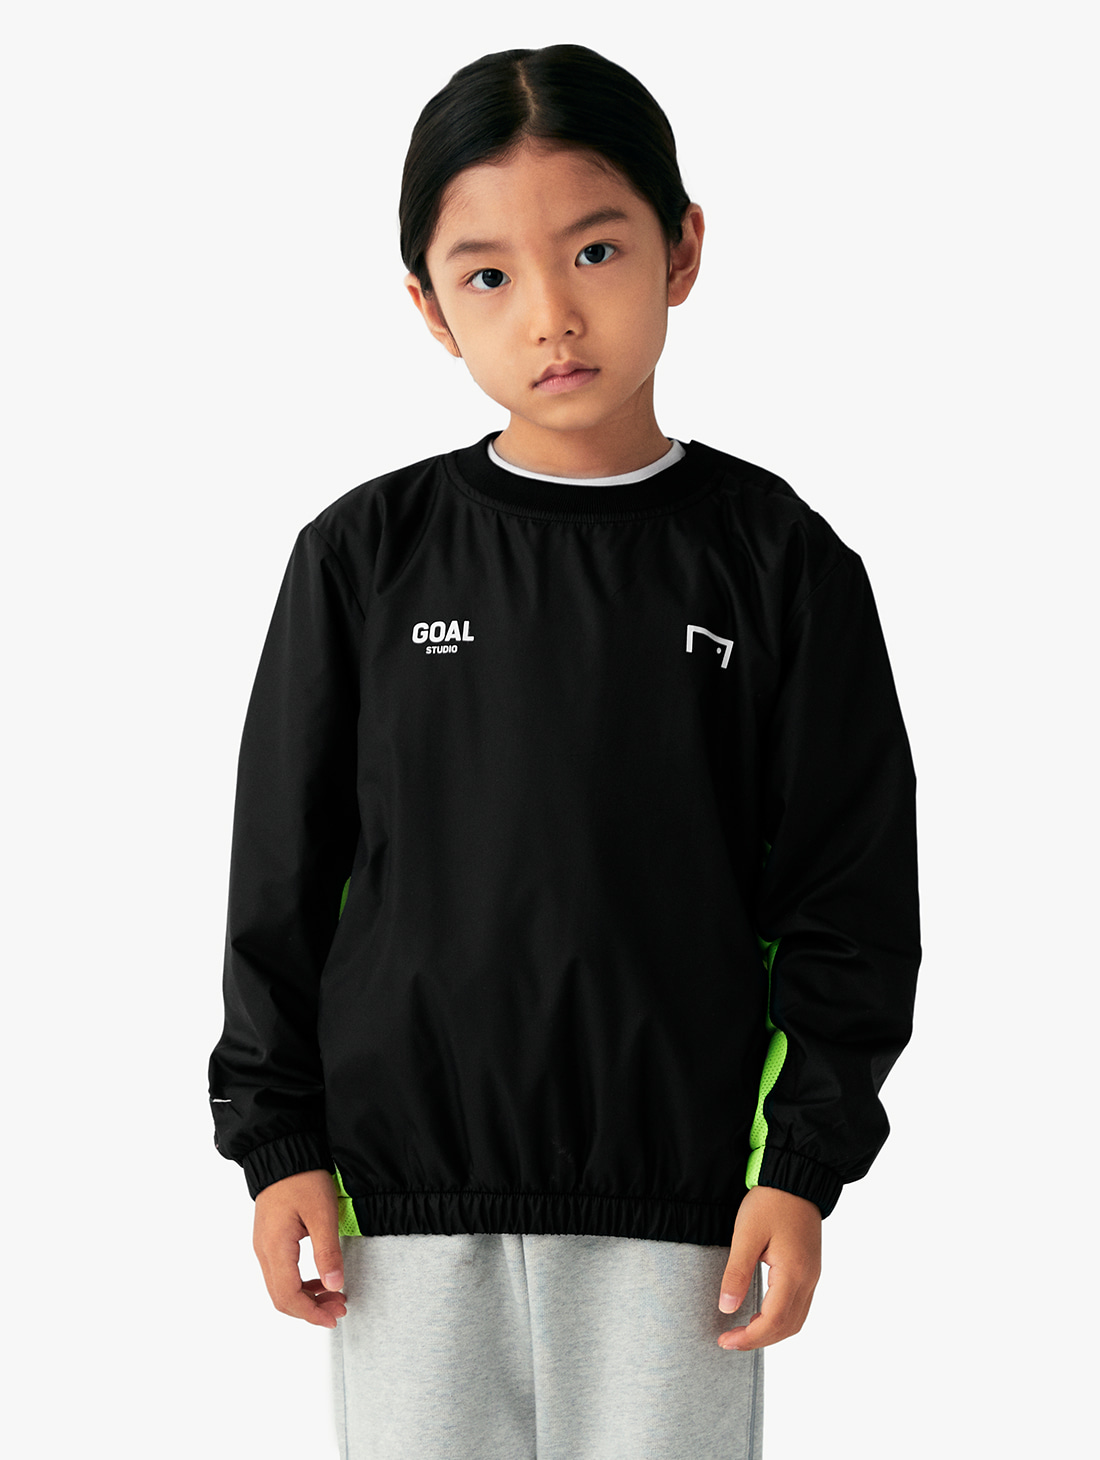 GOALSTUDIO (KIDS) SIGNATURE LOGO WINDPULLOVER (3 Colors)